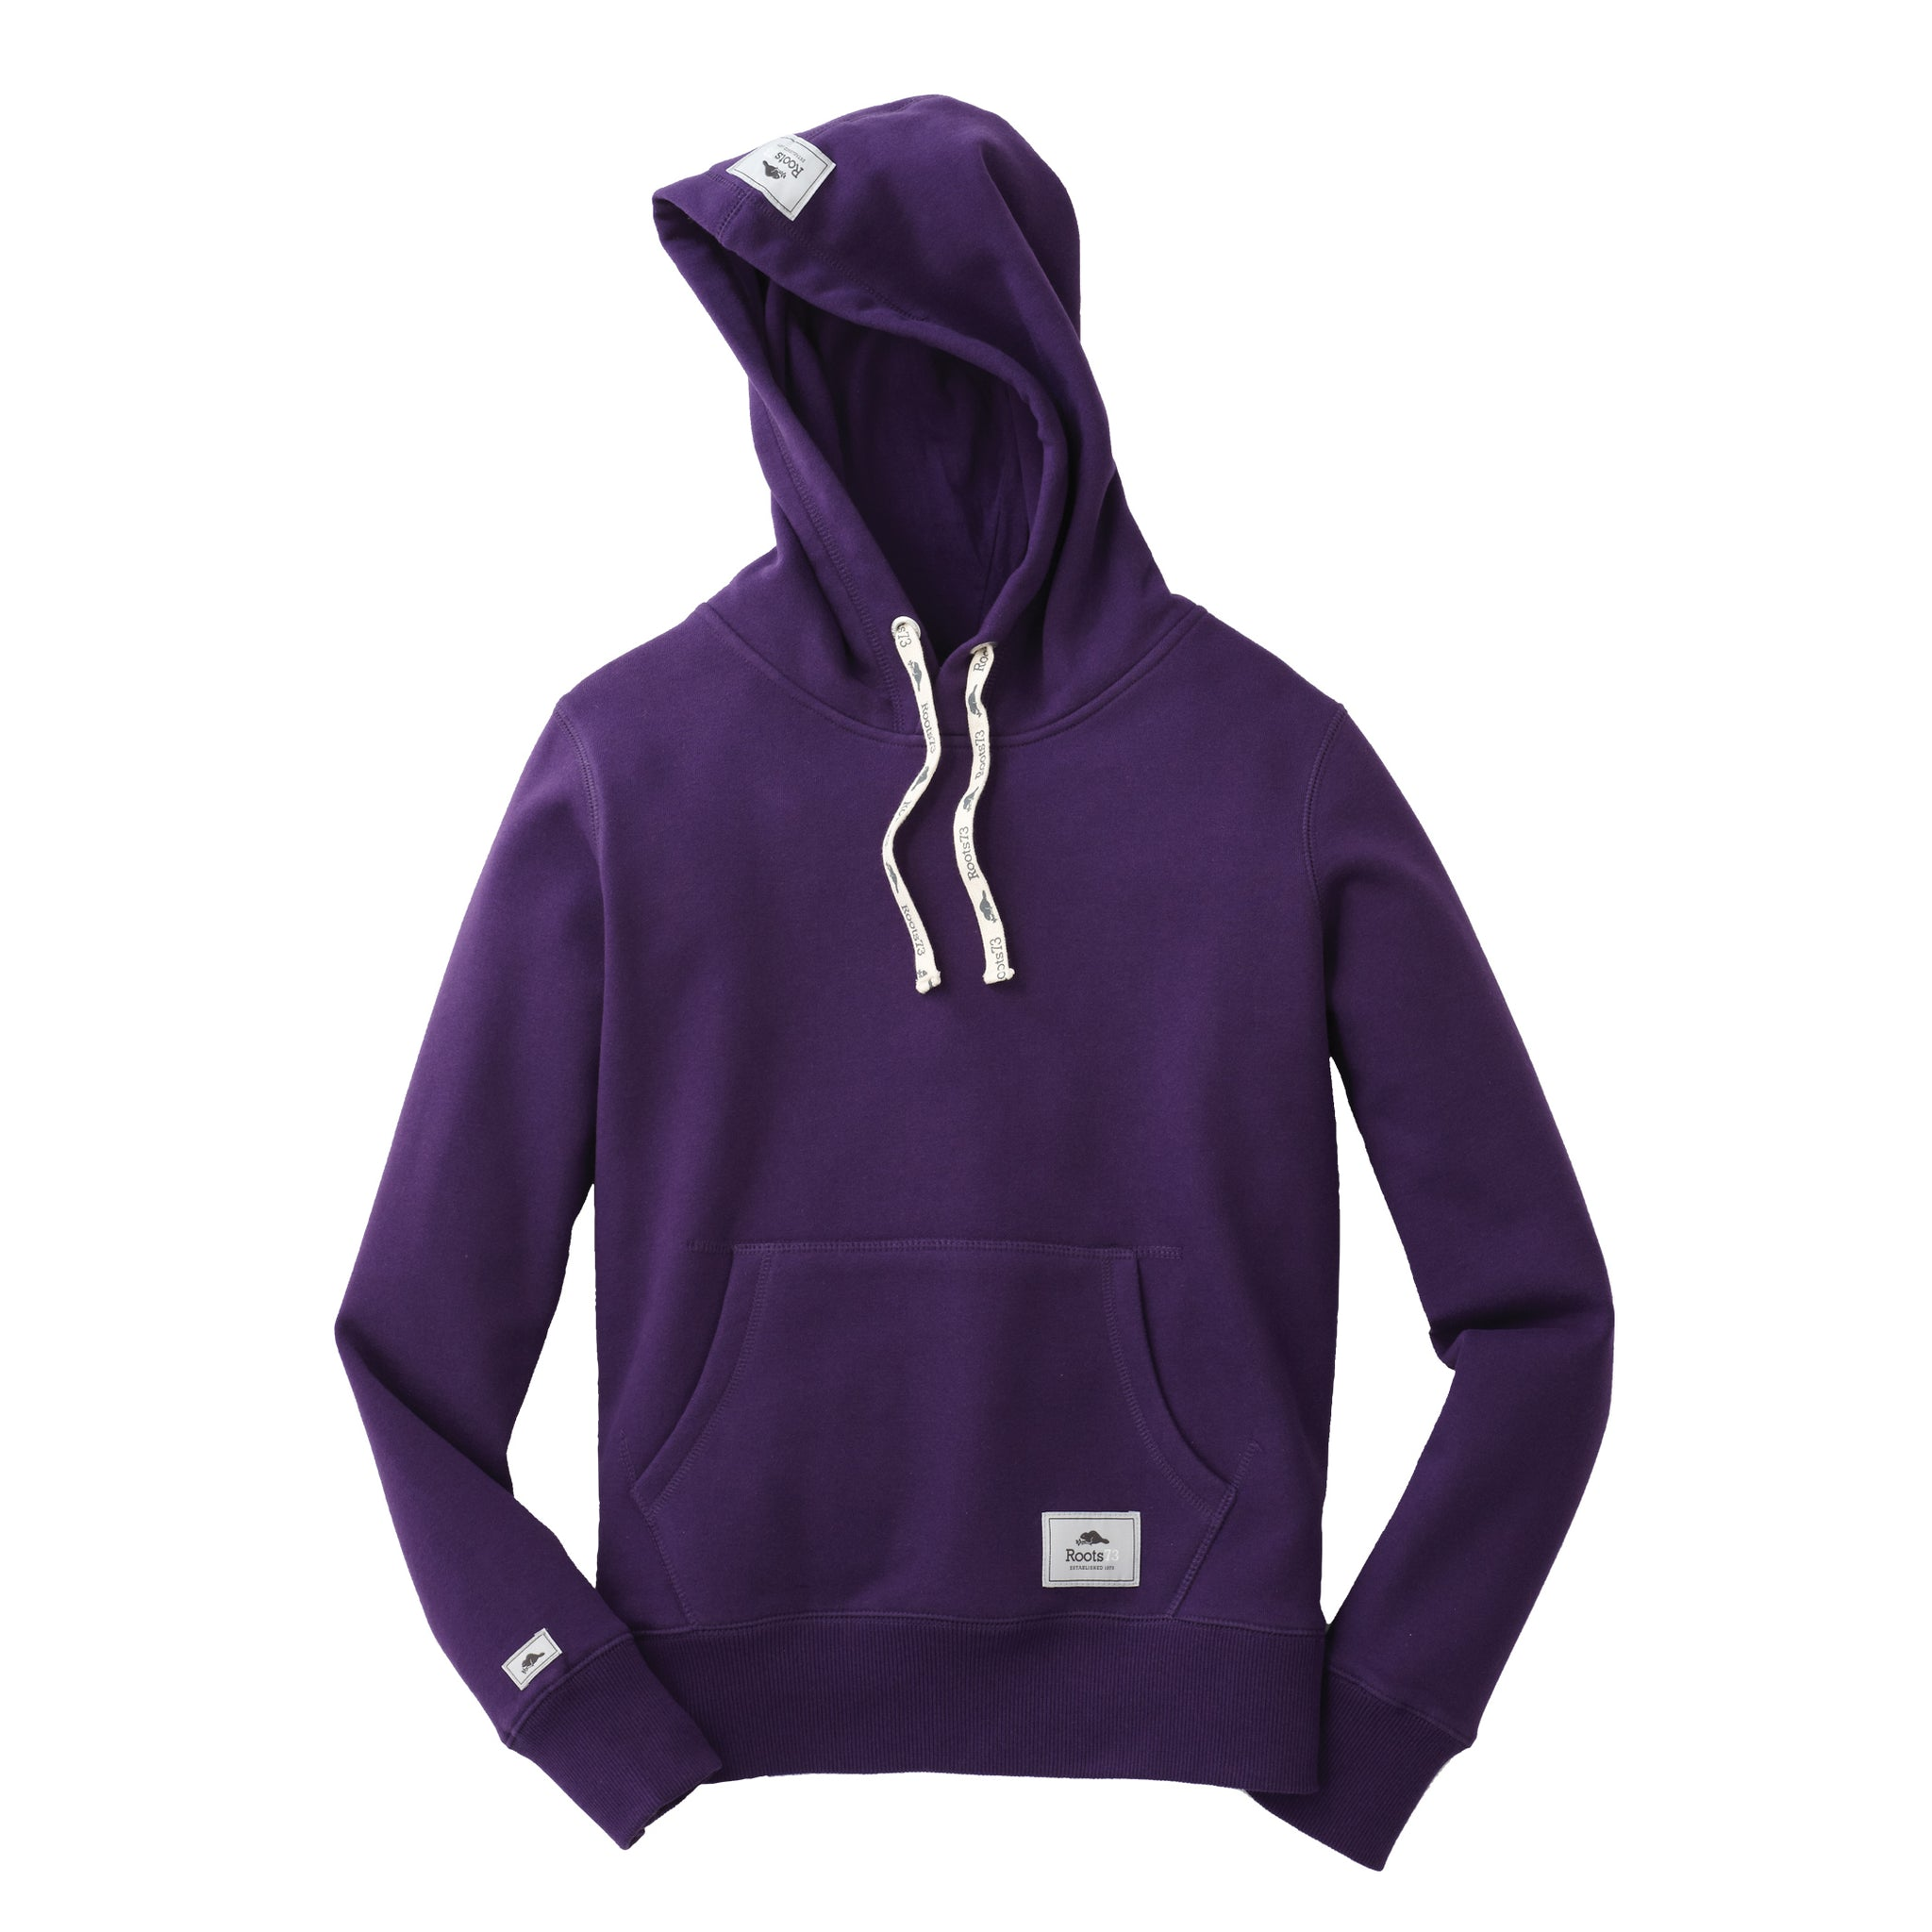 ROOTS73 LADIES CRESTON FLEECE HOODY